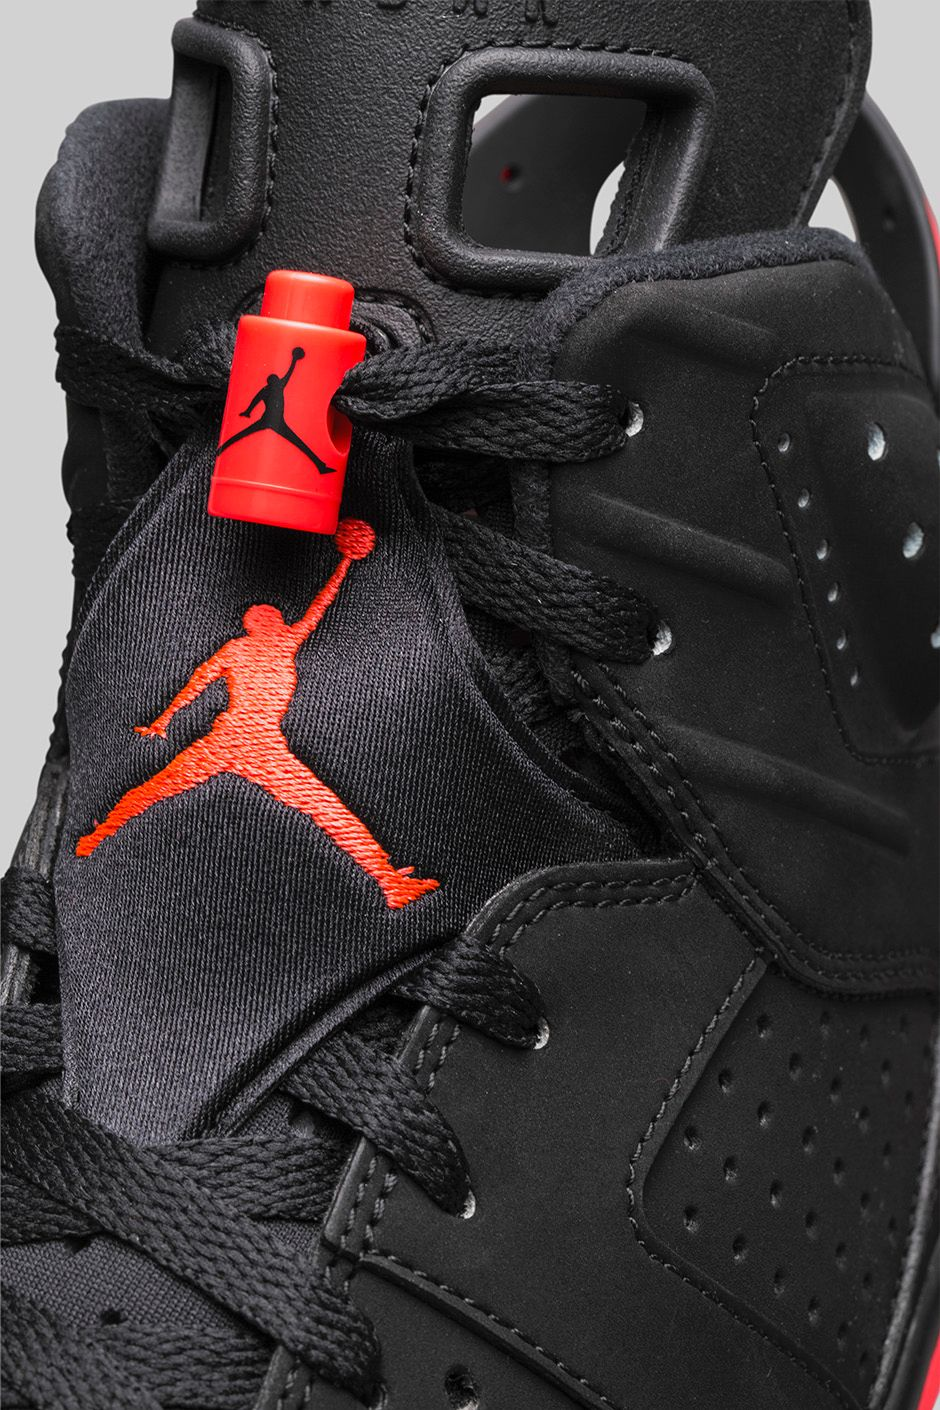 fa65e1f4ff8 ... 6 retro infrared for black friday 2014 sneakernews 453c0 a345b; coupon  for the famous red lace lock will be making its return we are sure it